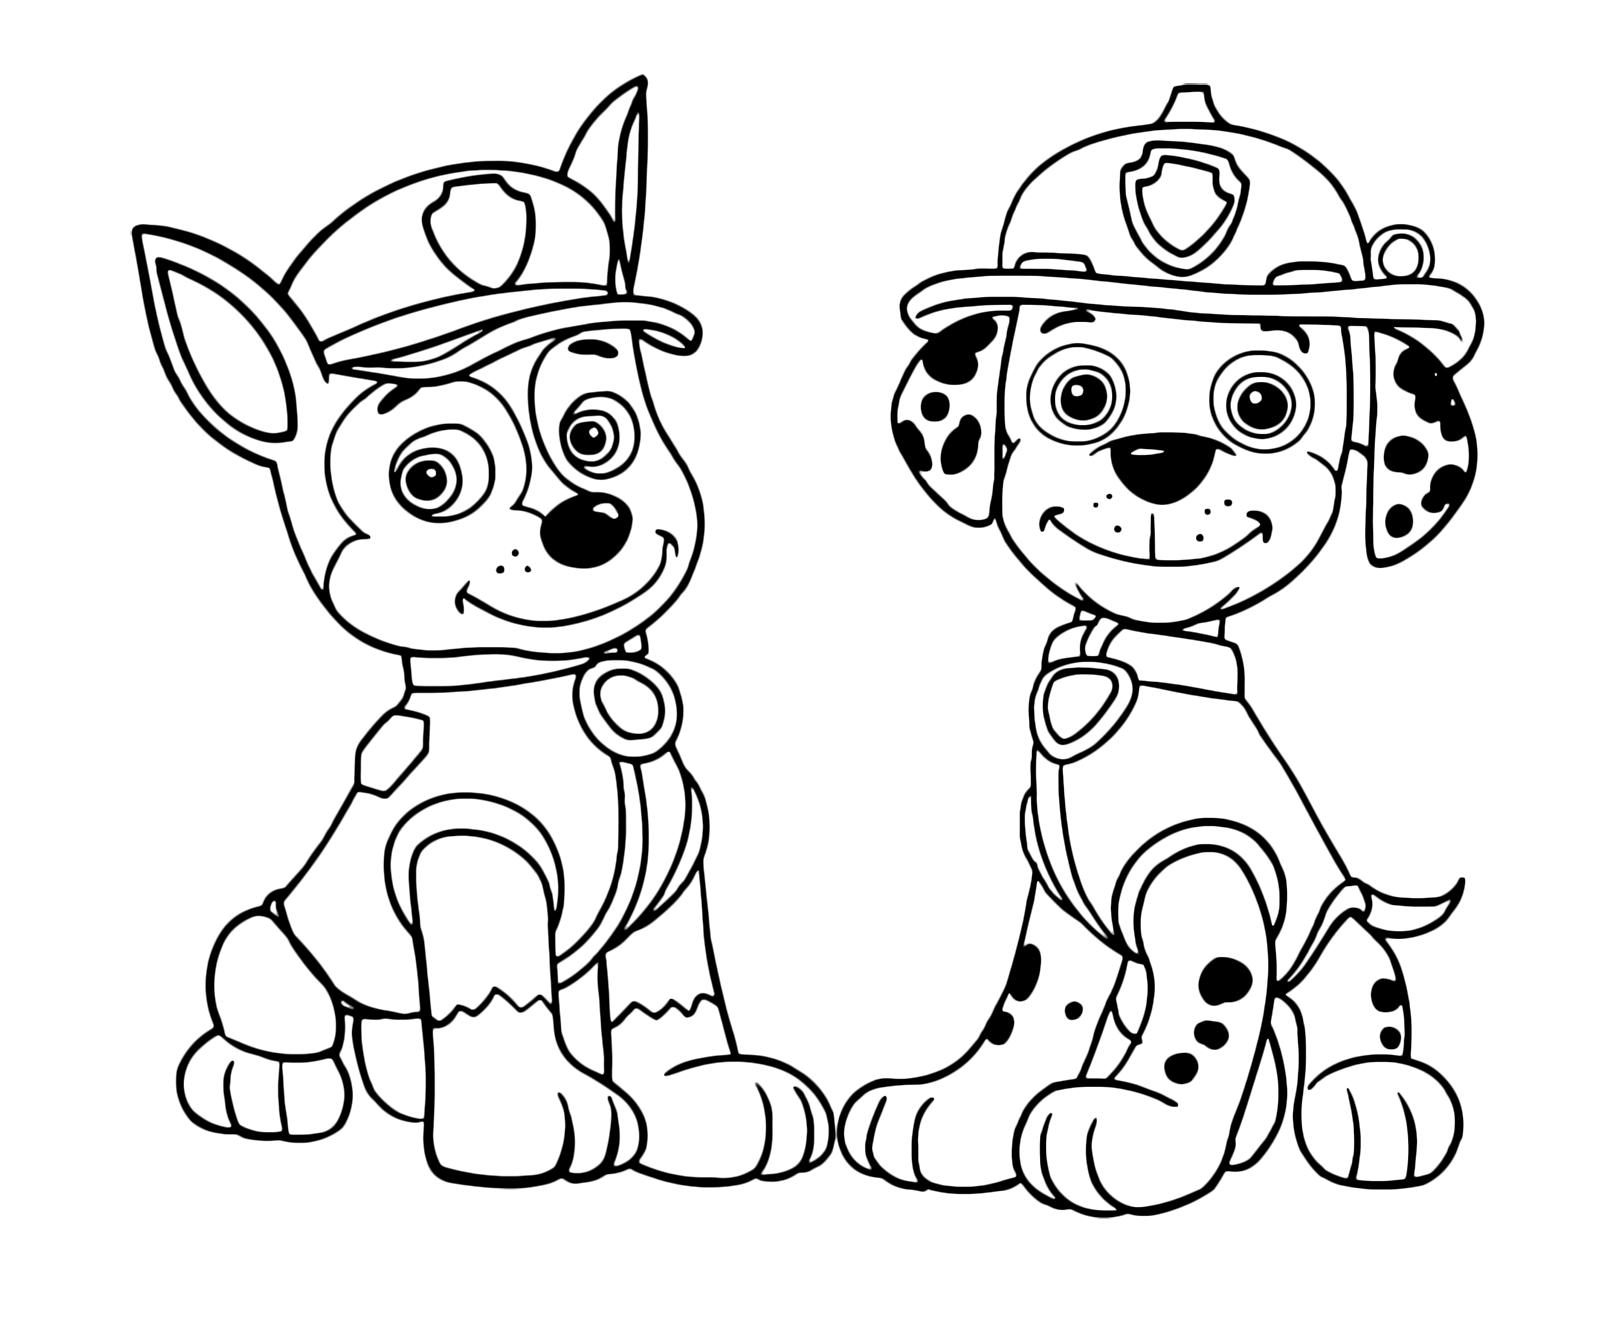 paw patrol chase coloring page paw patrol coloring pages downoadable k5 worksheets paw patrol page chase coloring